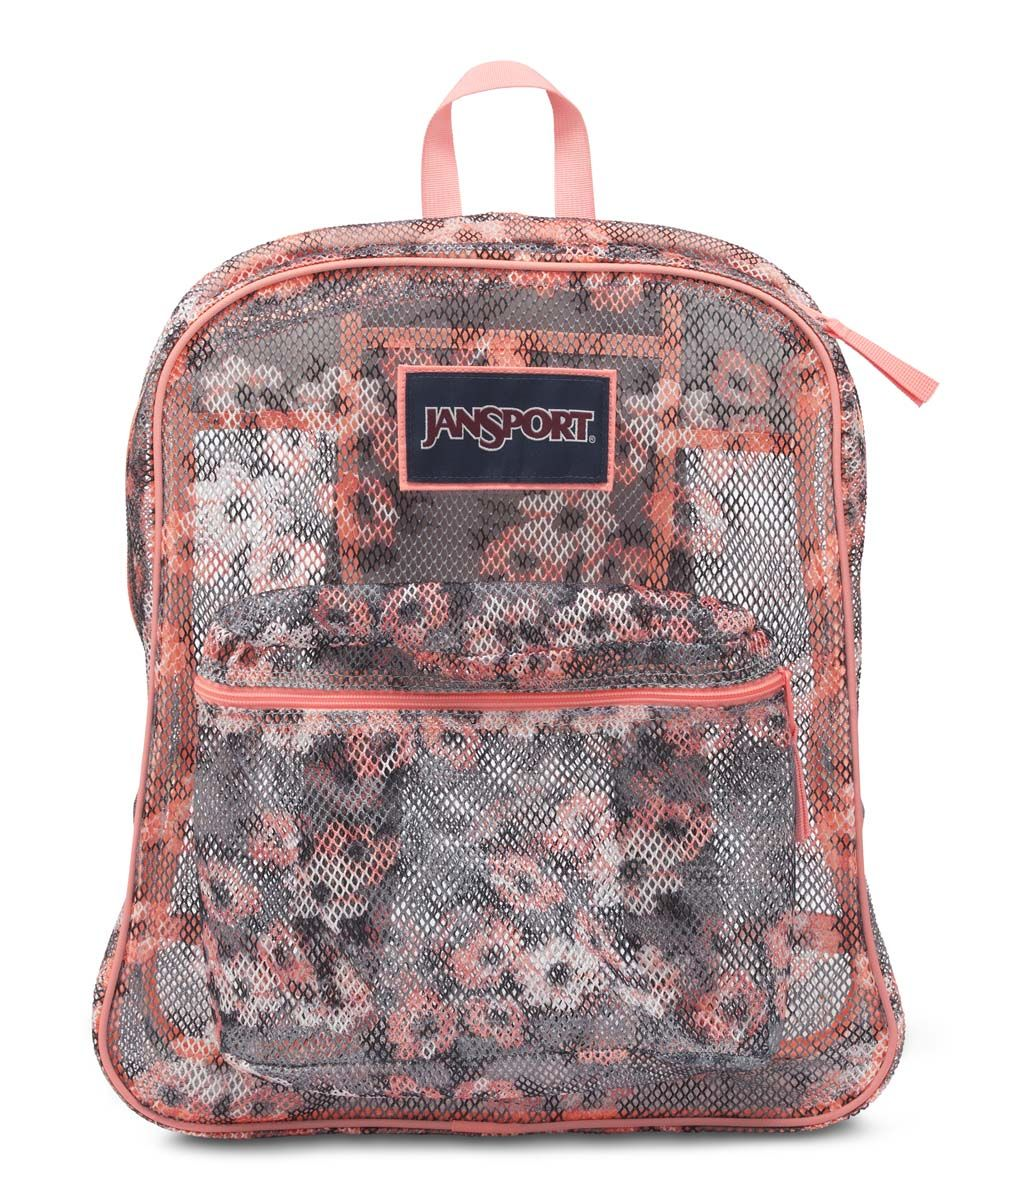 52fe5b3c273 JanSport Mesh Pack School Backpack - Coral Sparkle Pretty Posey ...